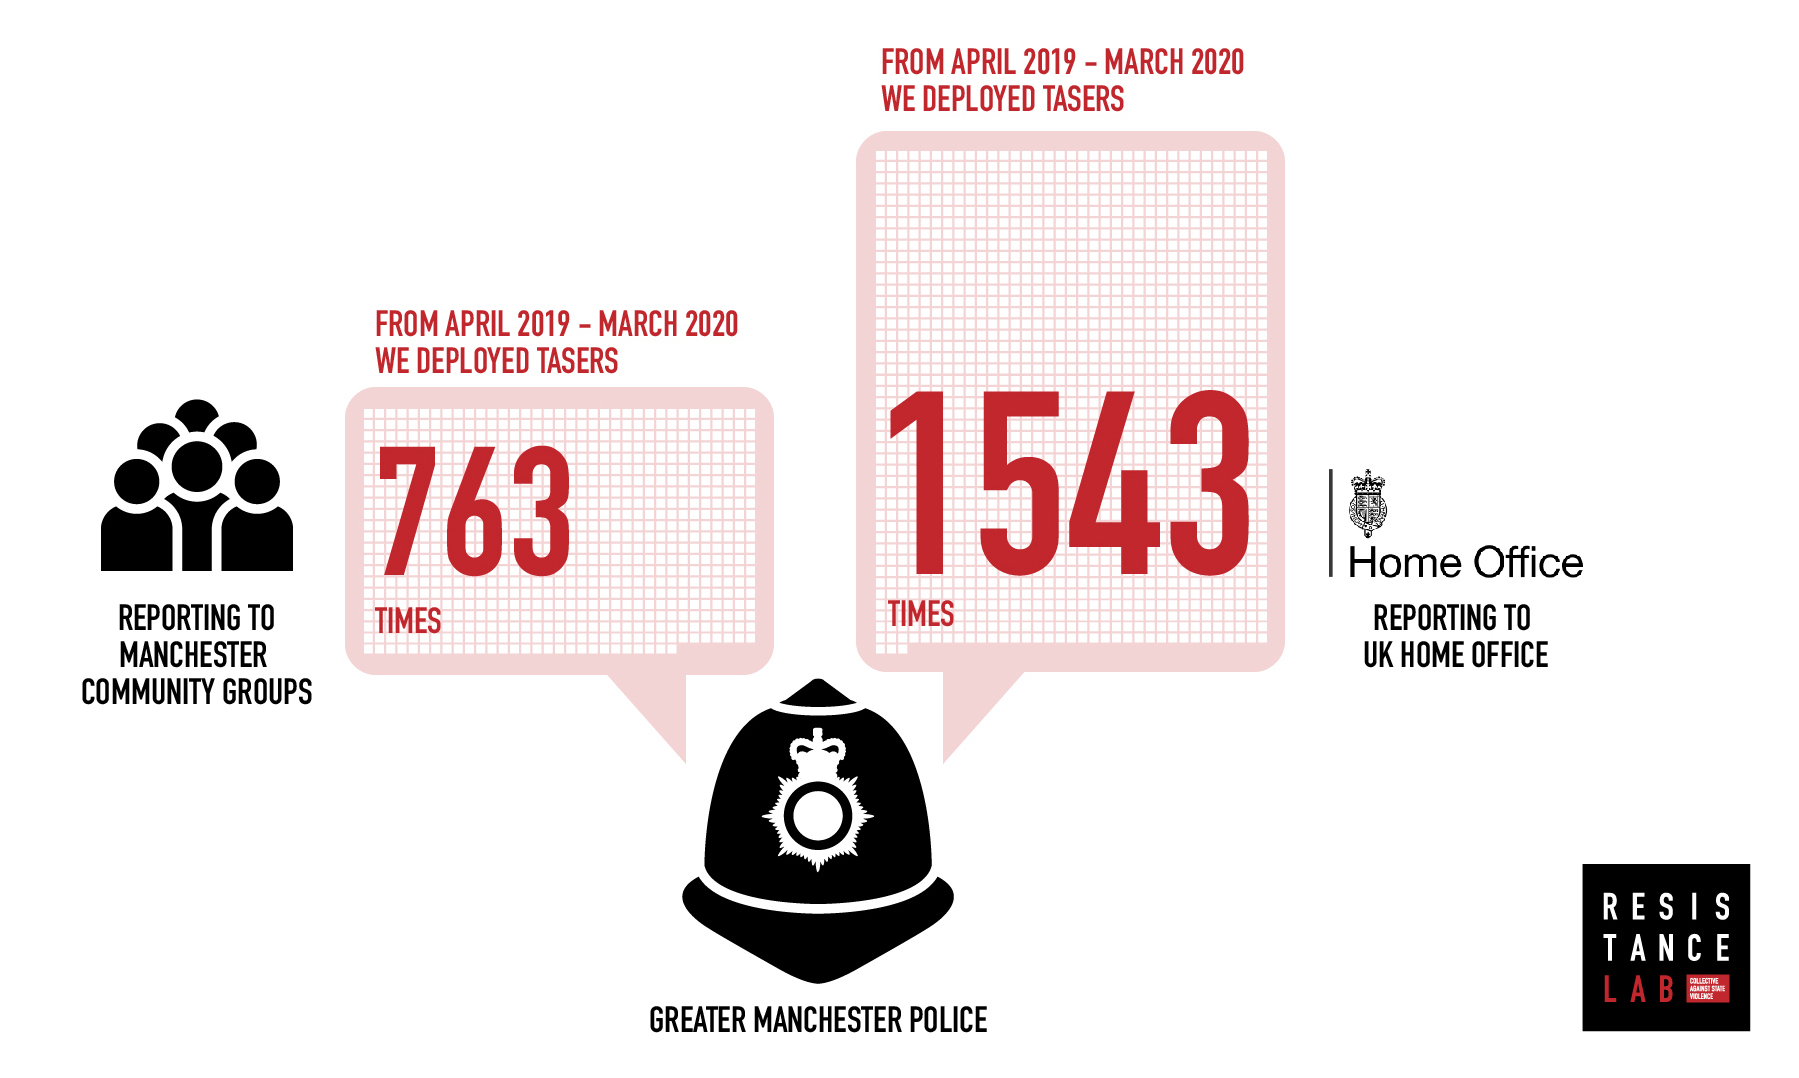 Infographic showing reporting taser deployments to community groups: 763 times vs to UK Home Office: 1543 times